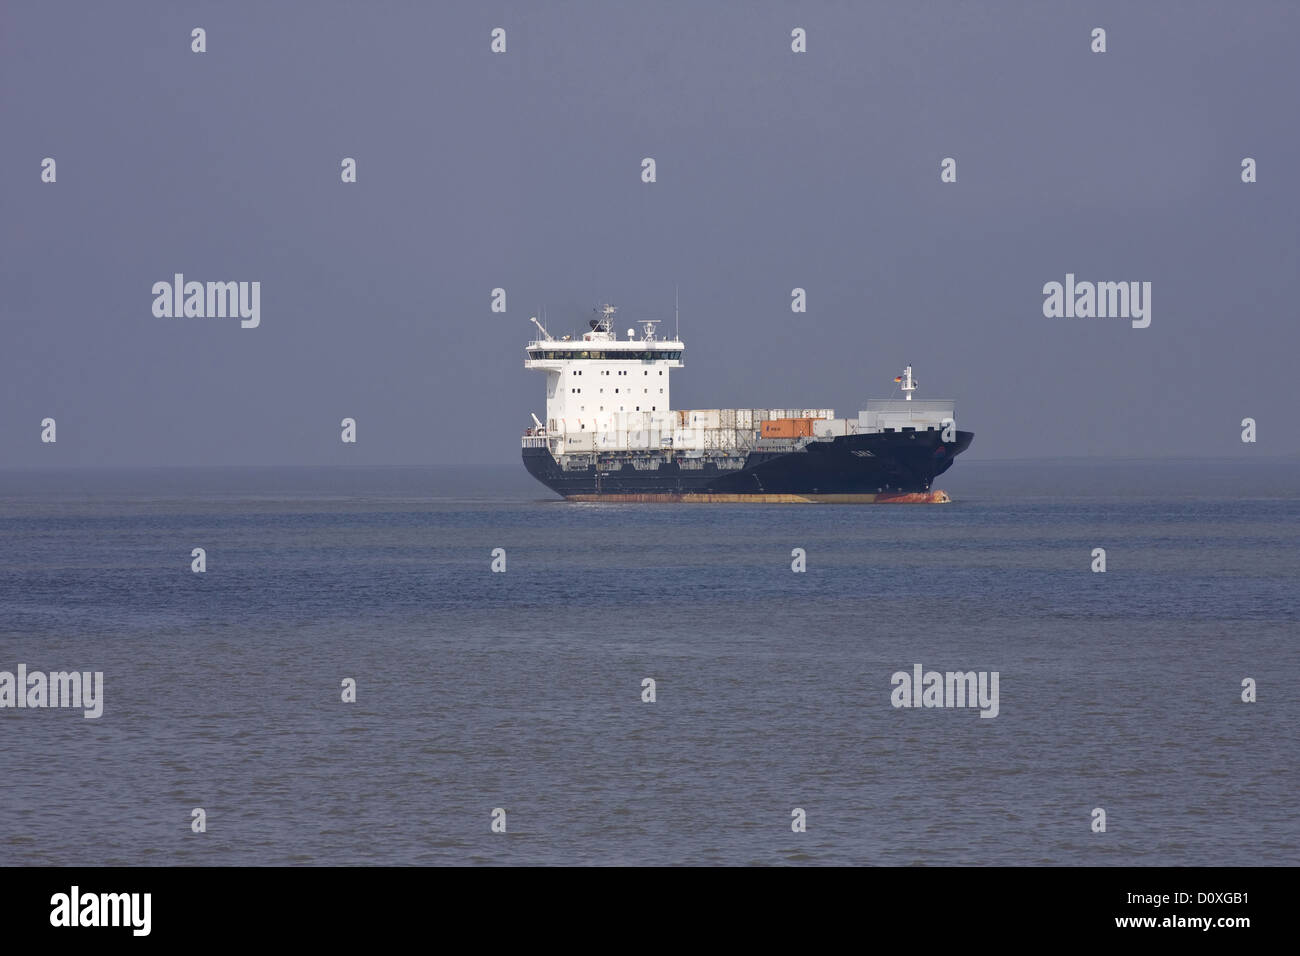 Container, container ship, Germany, Elbe, Europe, freighter, freight hauler, big, Hamburg, Germany, horizontal format, - Stock Image